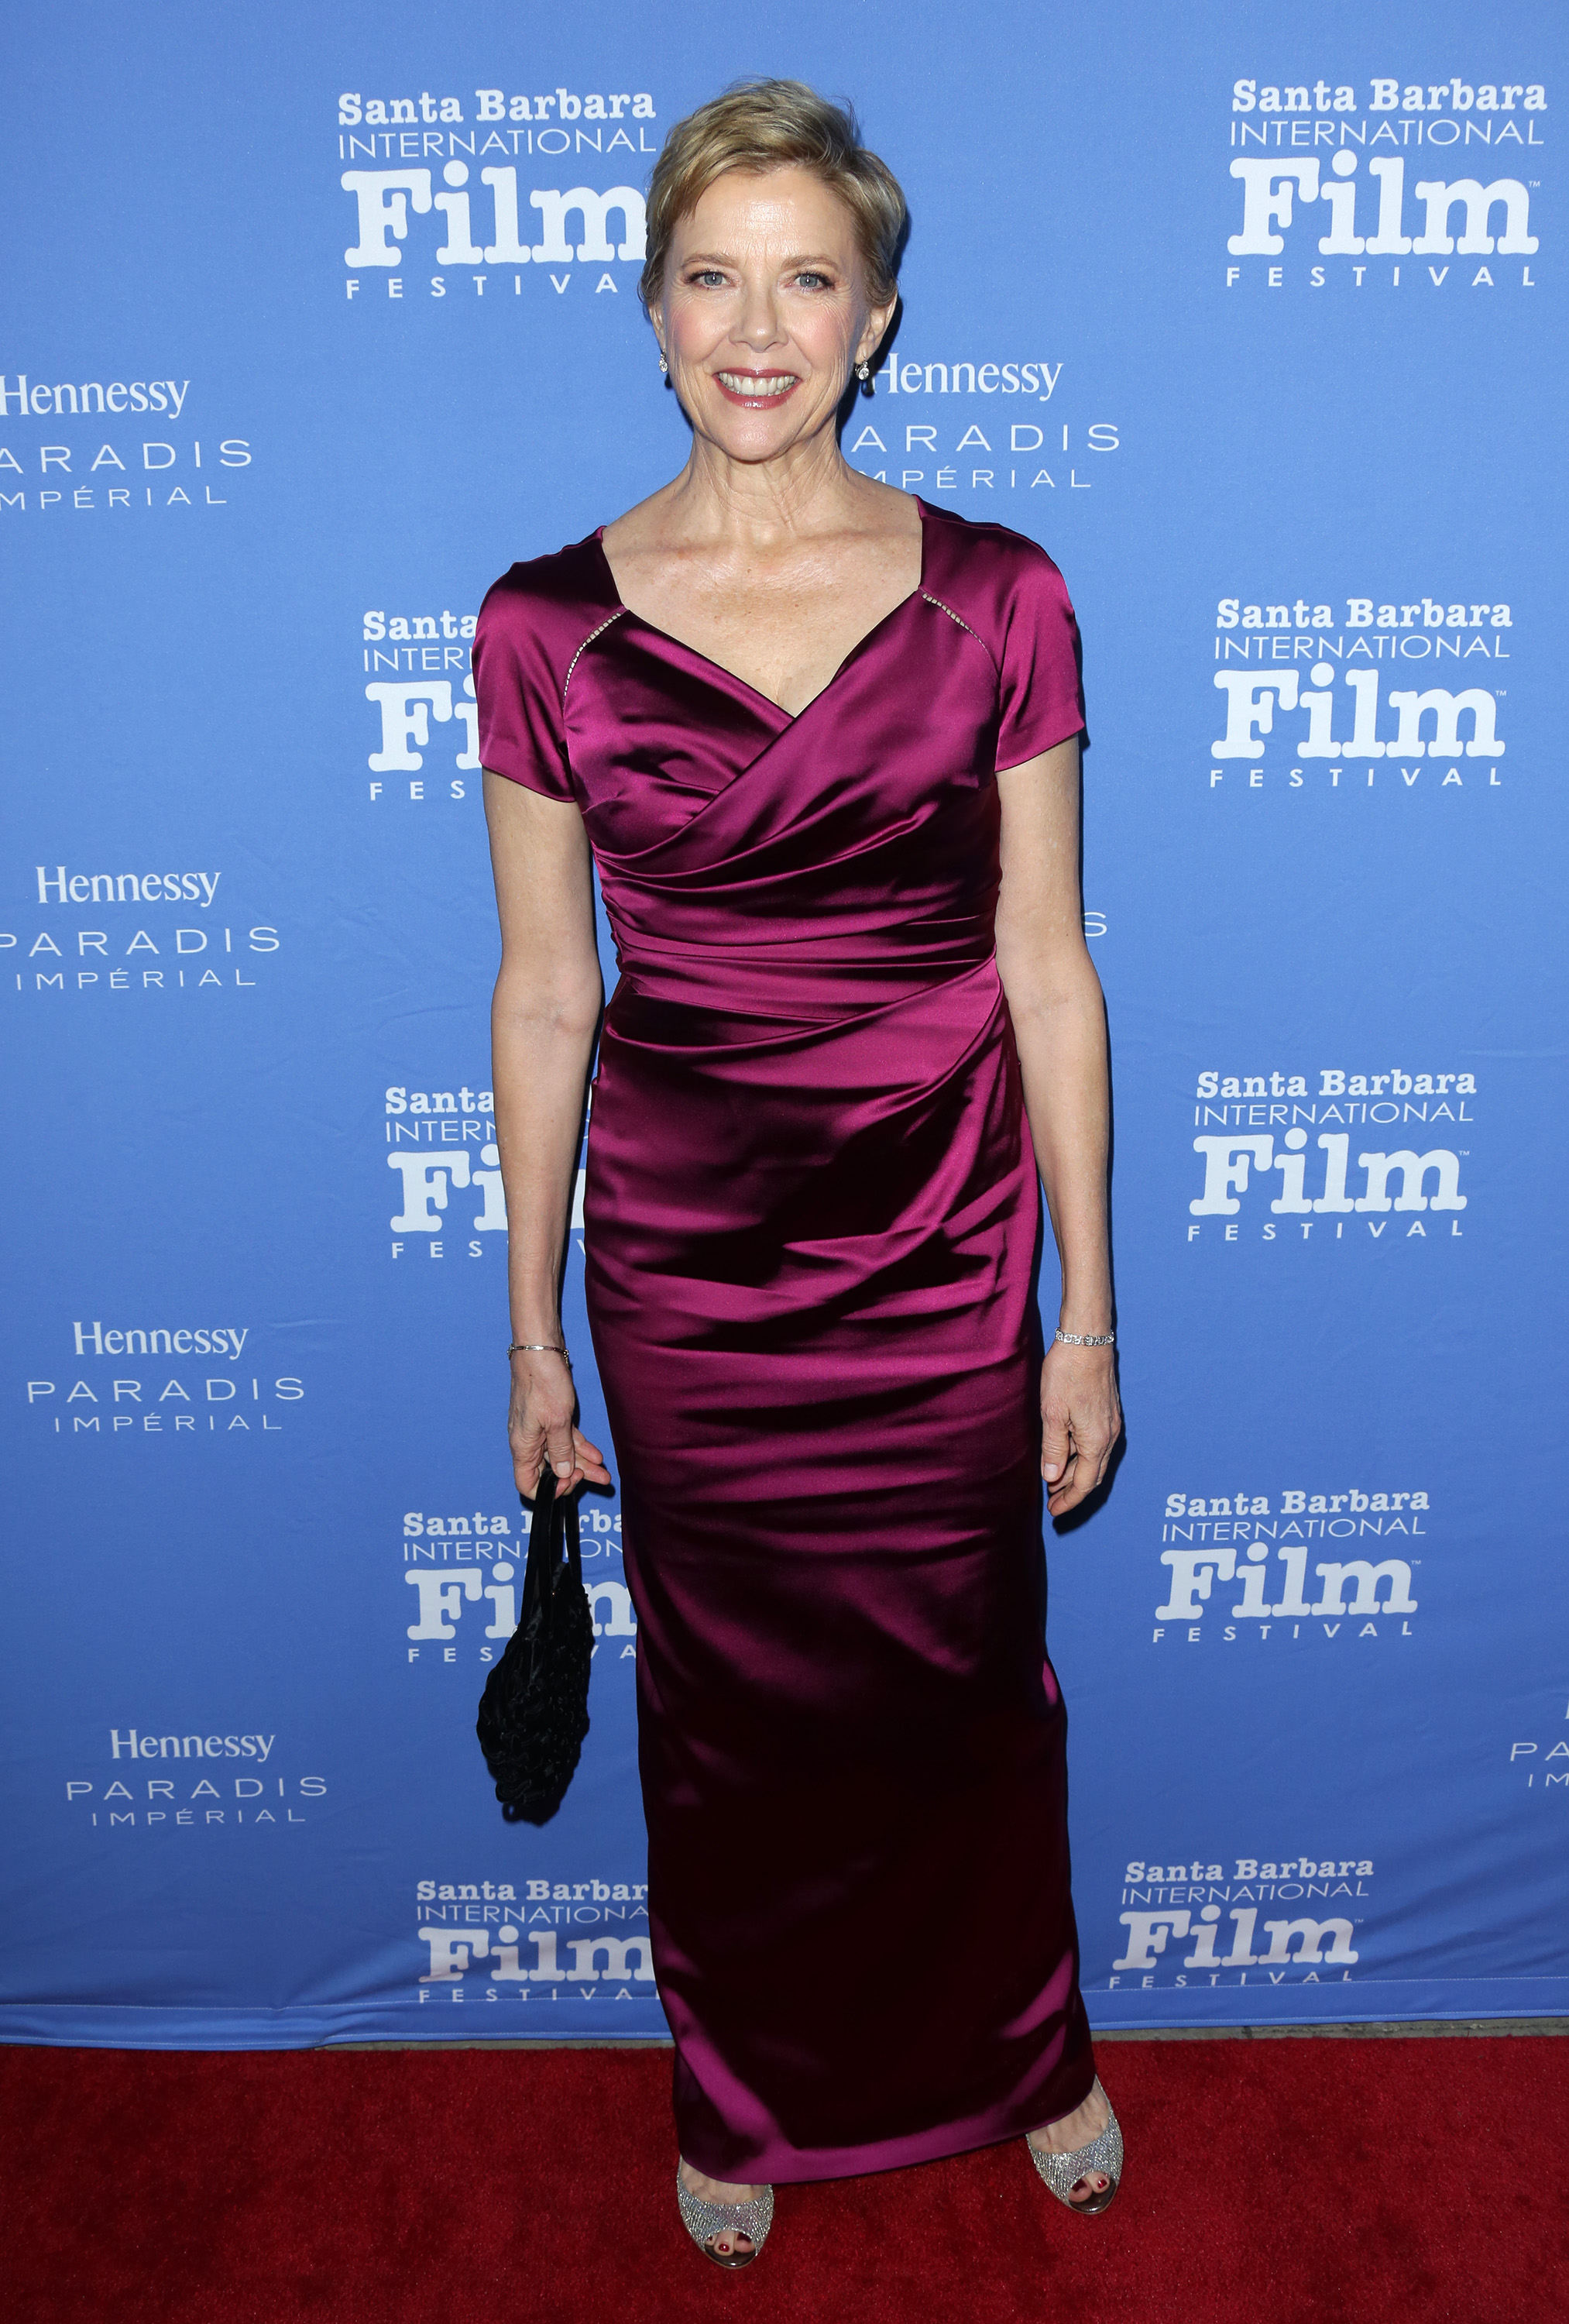 Annette Bening at the Santa Barbara Film Festival. Photo by Jim Smeal/BEI/Shutterstock